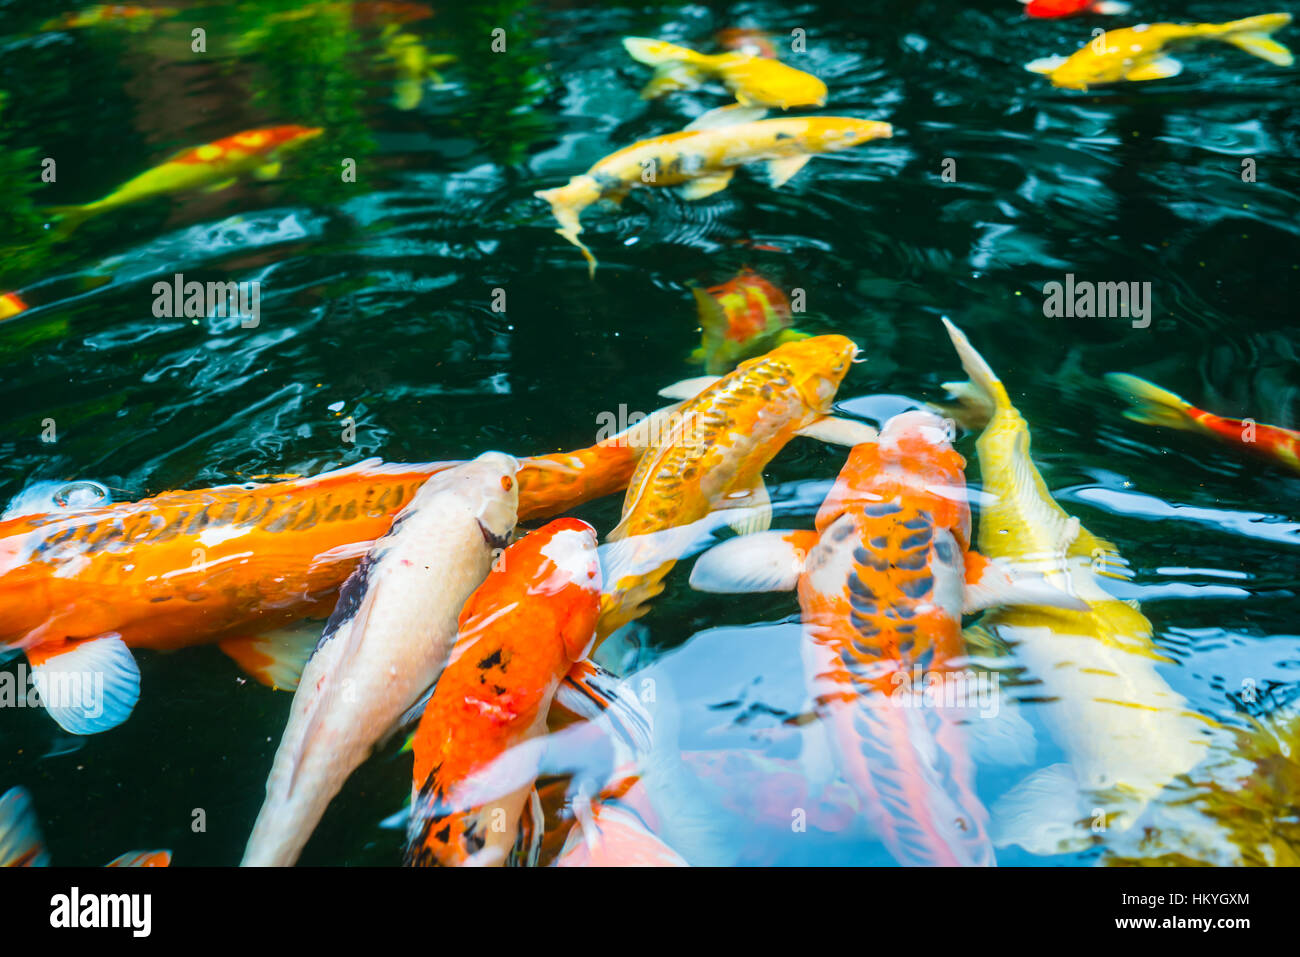 Colorful Koi fish swimming in water Stock Photo: 132757036 - Alamy